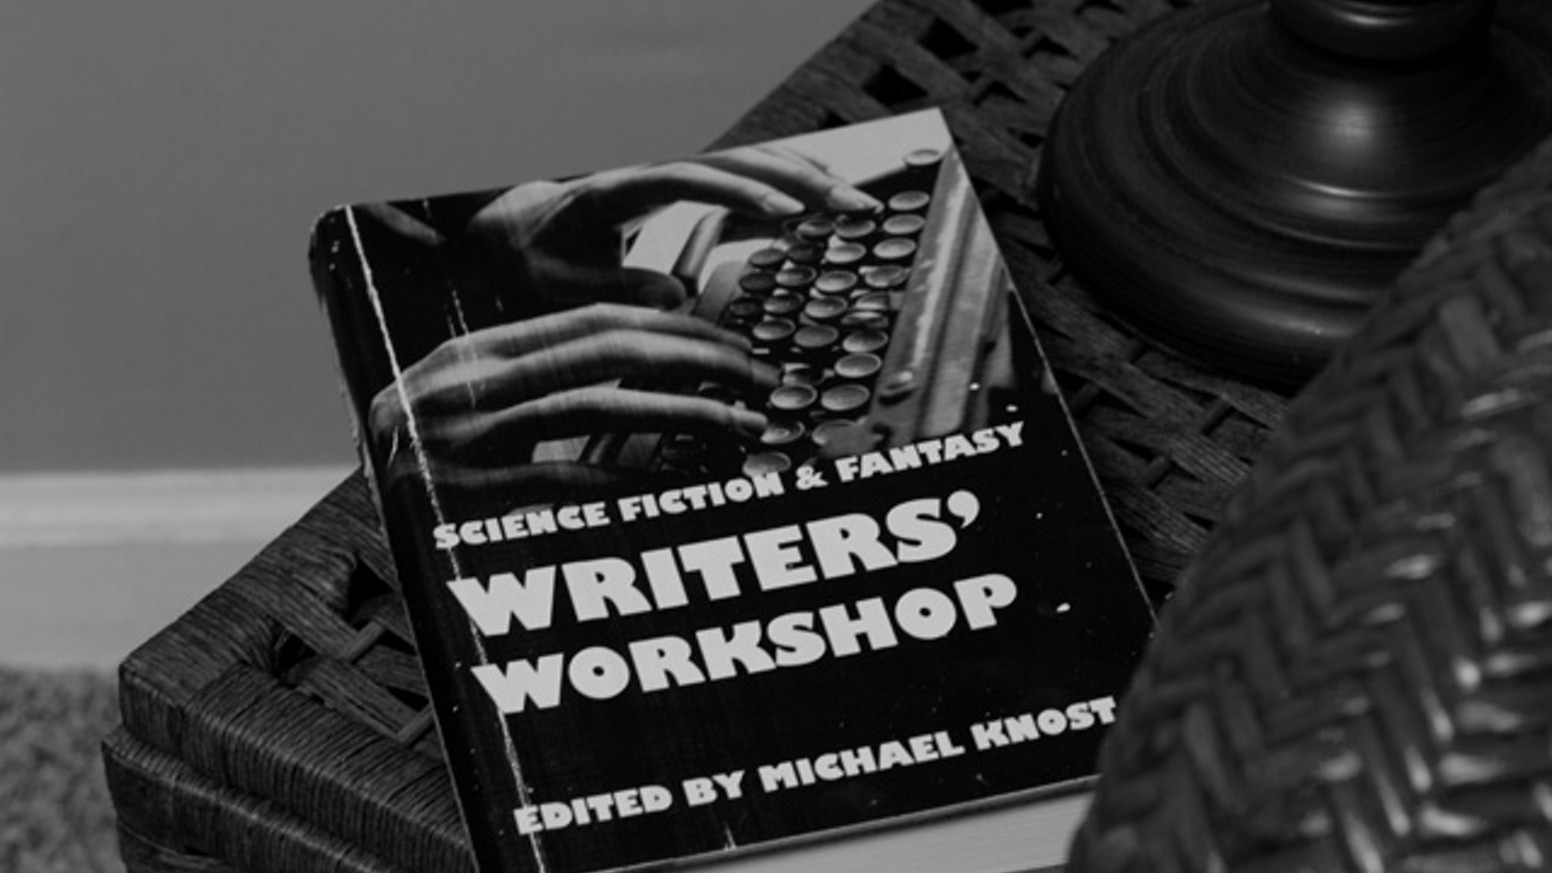 The Writers Workshop Of Science Fiction And Fantasy By Seventh Star  A Collection Of Essays And Interviews By Many Of Science Fiction And  Fantasys Greatest Writers Today On The Craft Of Writing